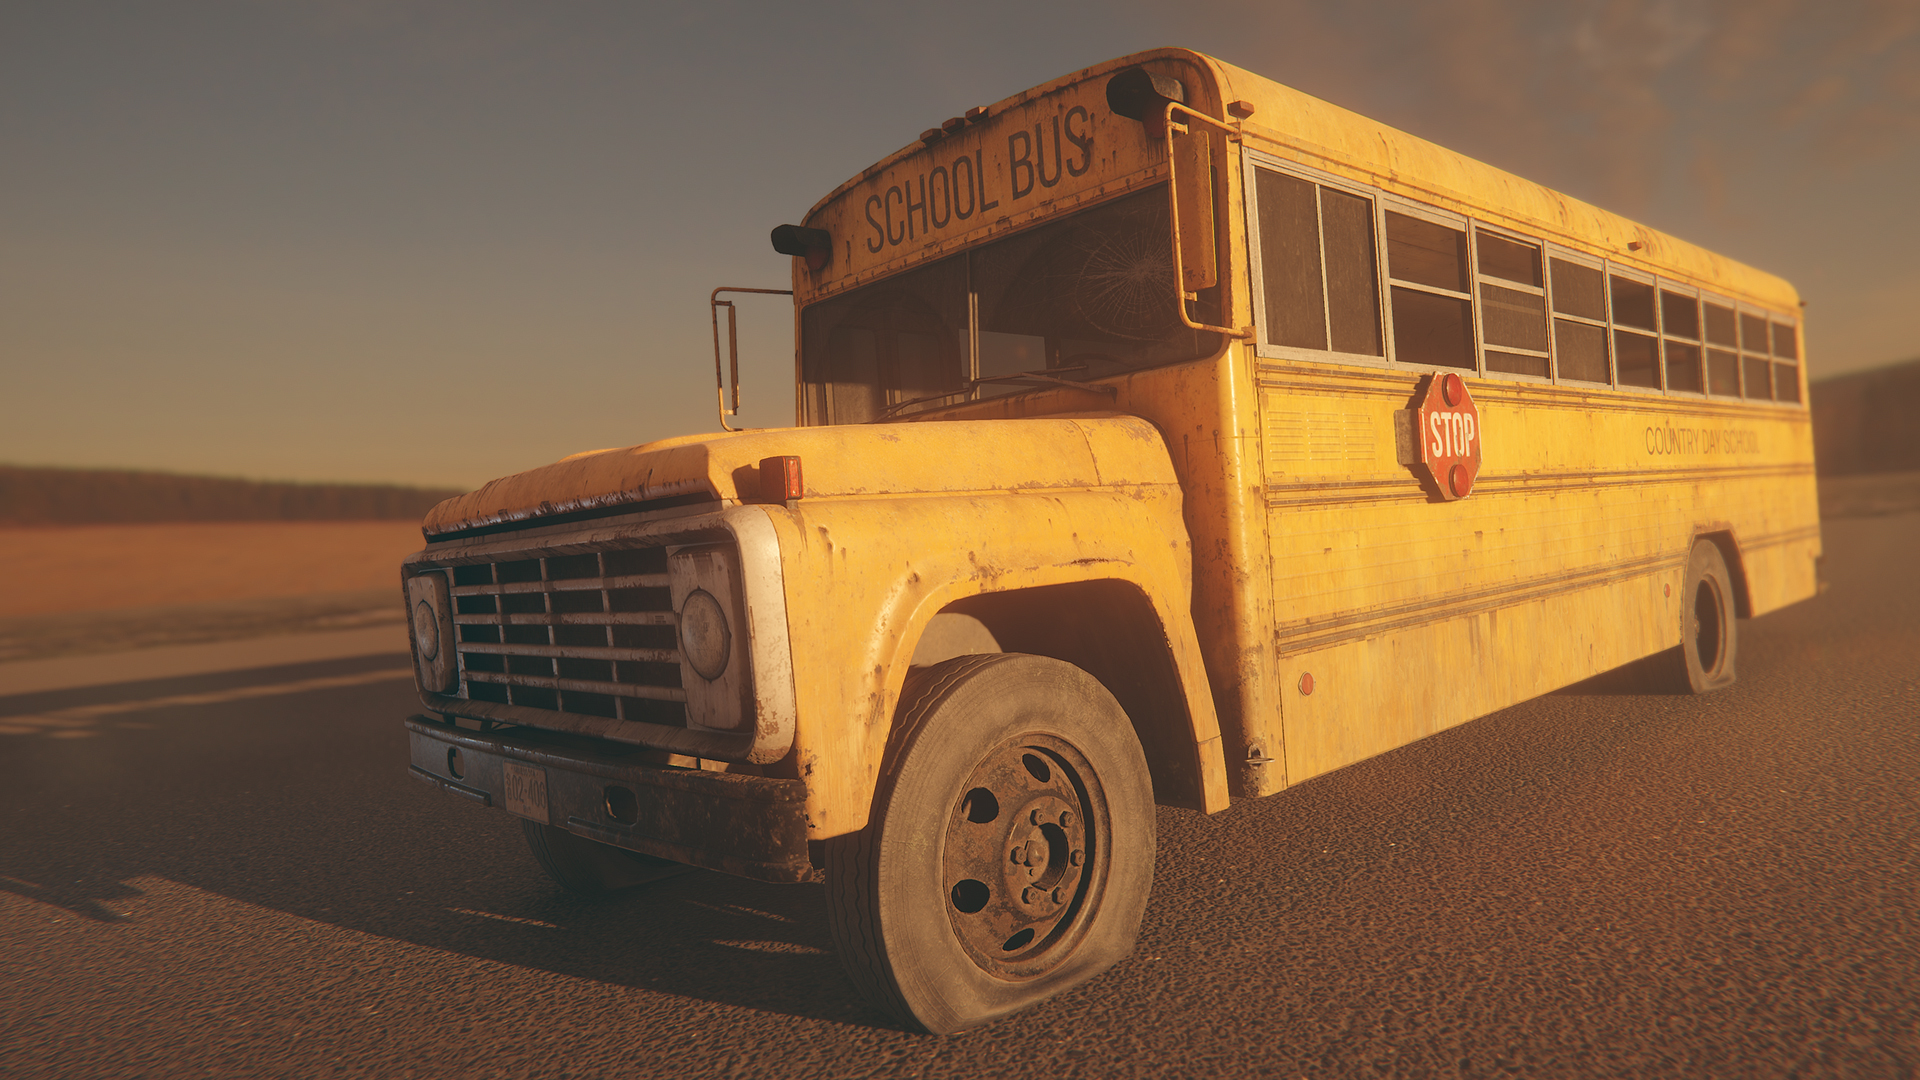 HQ RETRO SCHOOL BUS